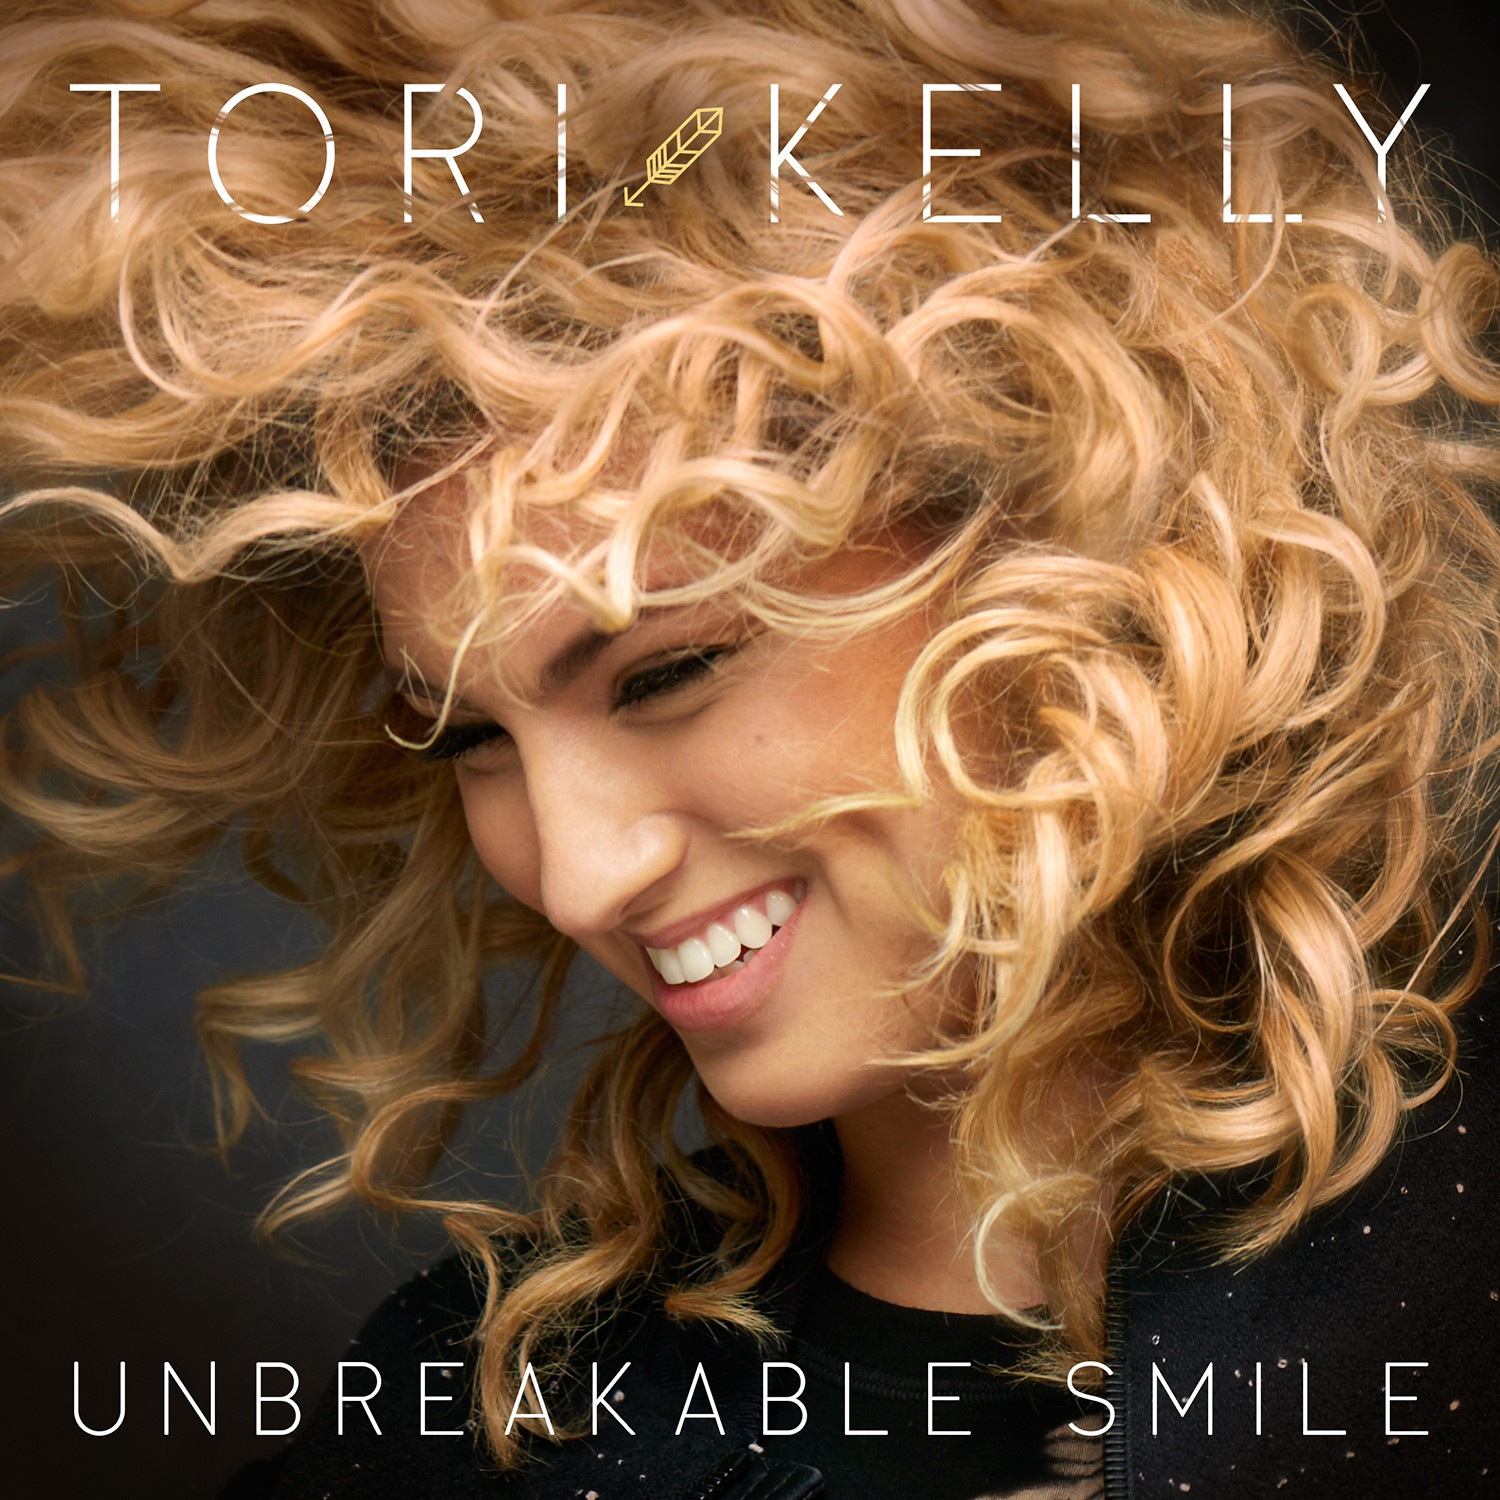 TKELLY_Unbreakable-Smile-album-cover-repack_lr